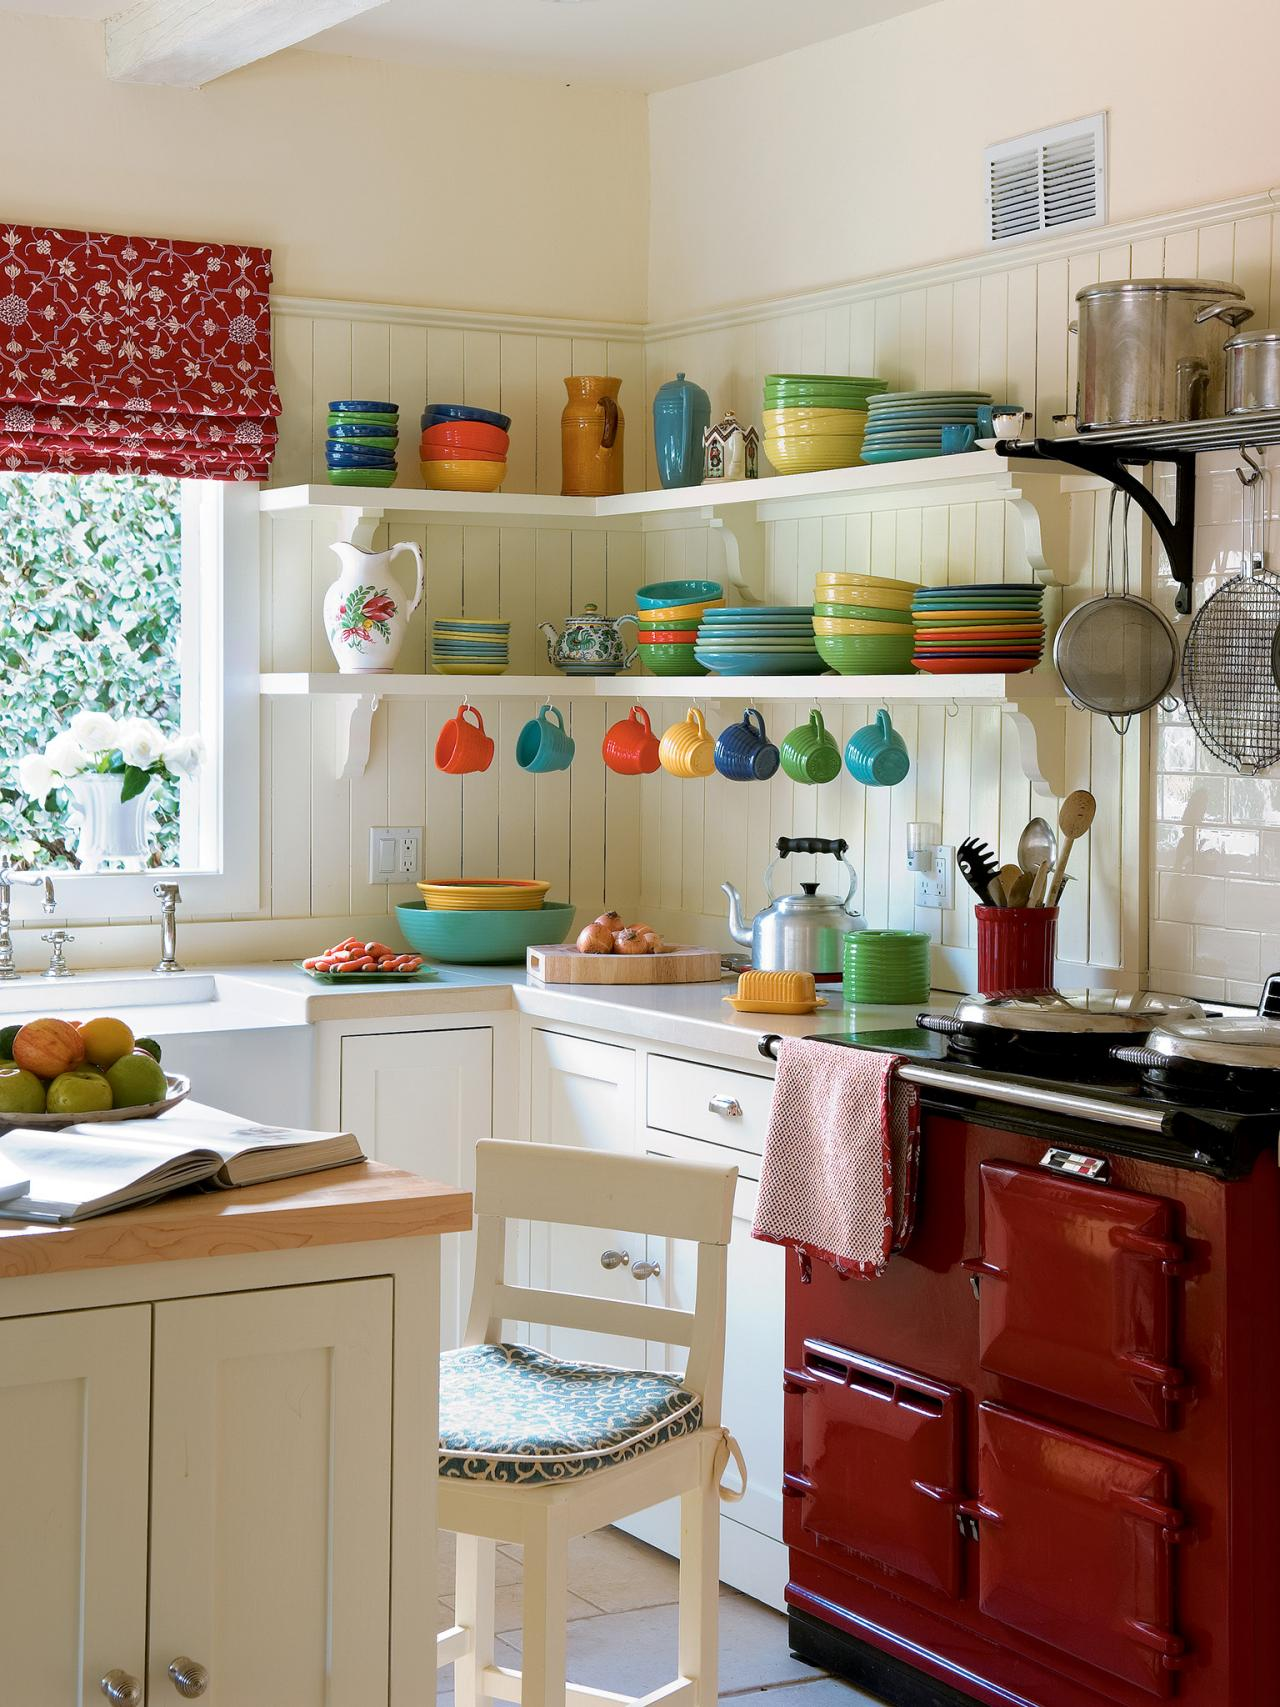 2017 01 diy kitchen cabinets in south africa - 2017 01 Diy Kitchen Cabinets In South Africa Classic Country And Cozy Download